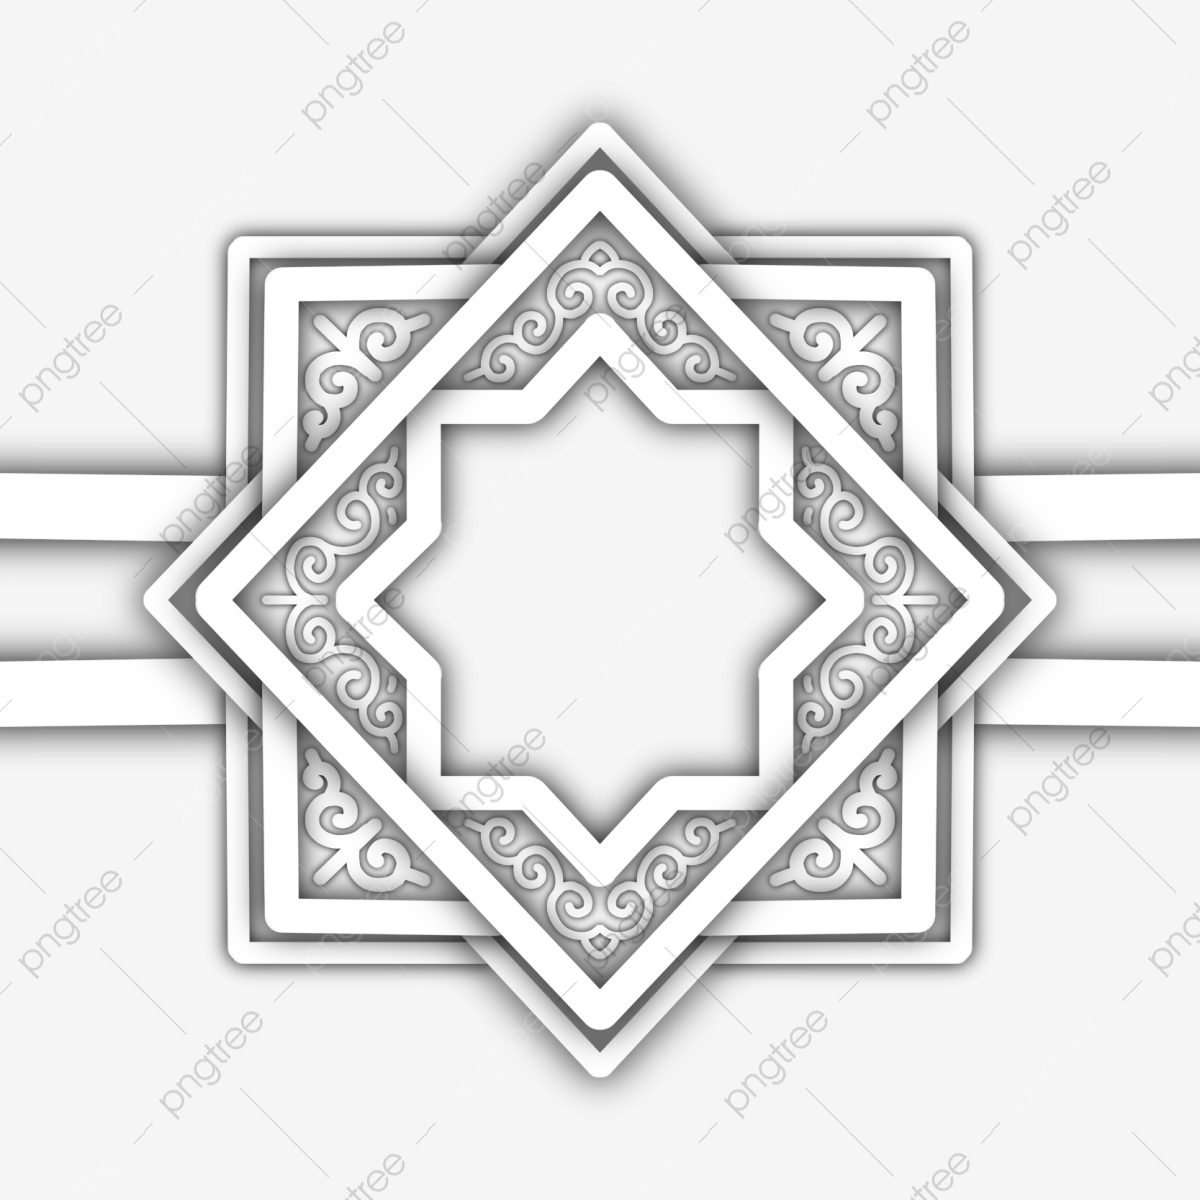 Simple 3d Paper Invitation Frame Empty Space Ornament Shading